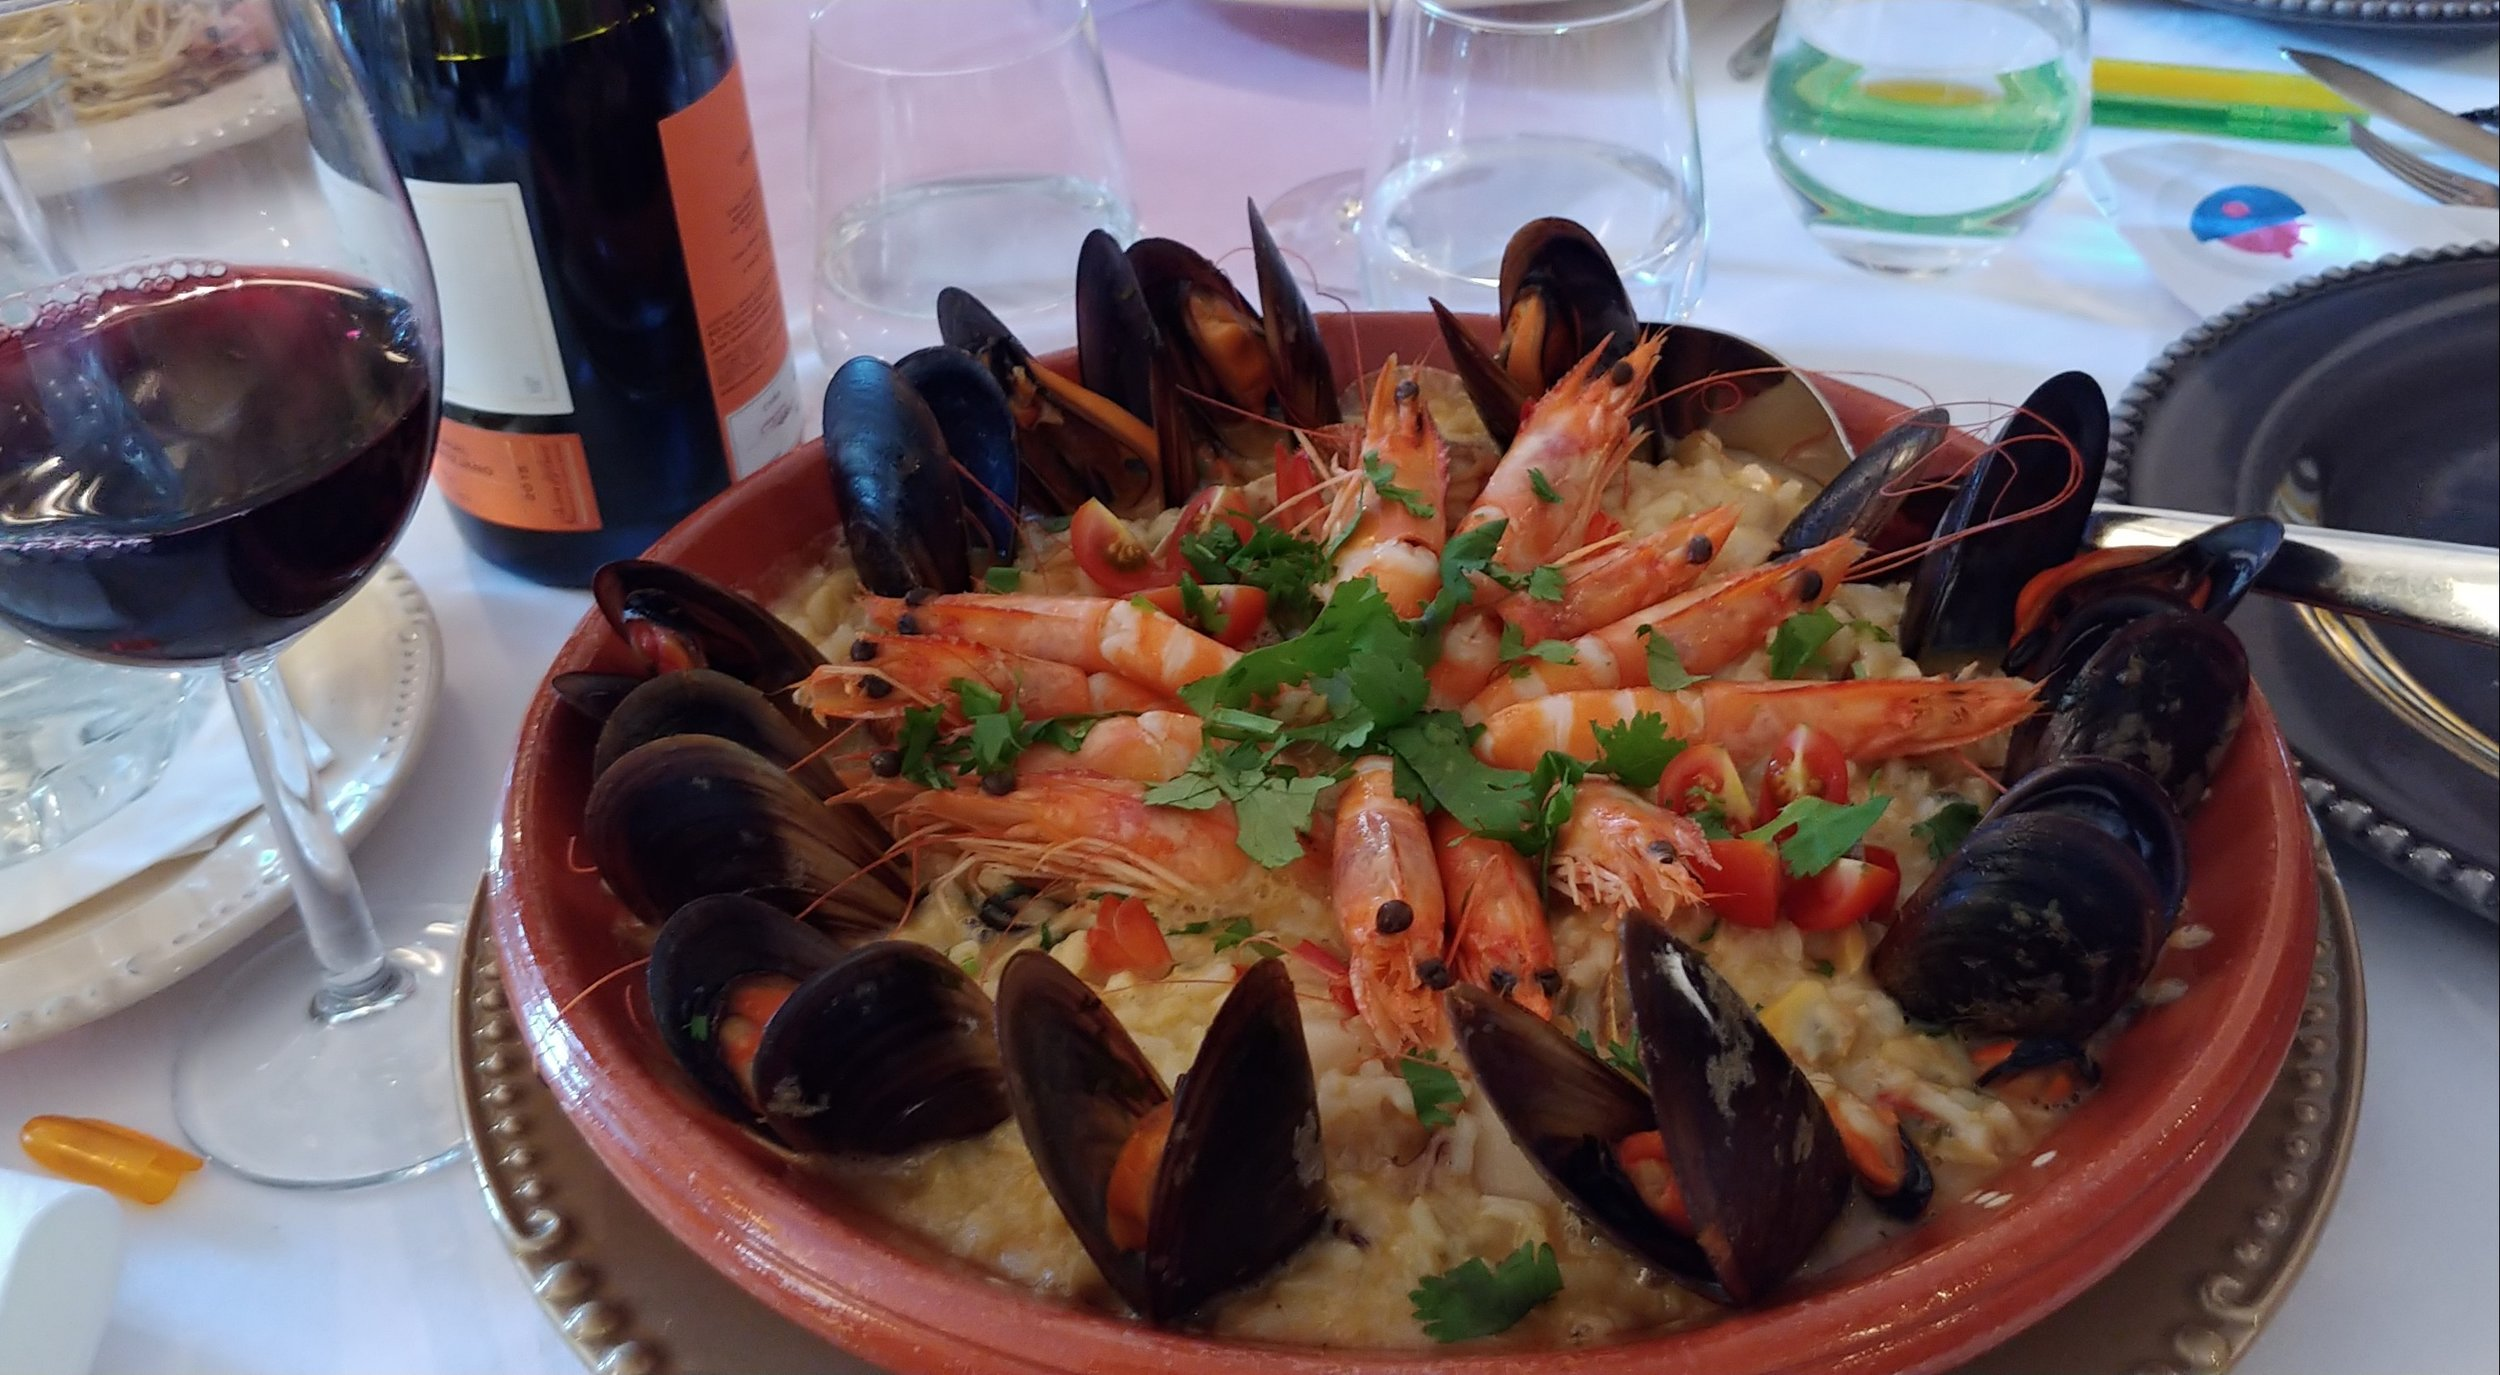 While you're debating the pronunciation of Cascais, I recommend you visit 5 Sentidos restaurant and have the seafood risotto. It's majestic.